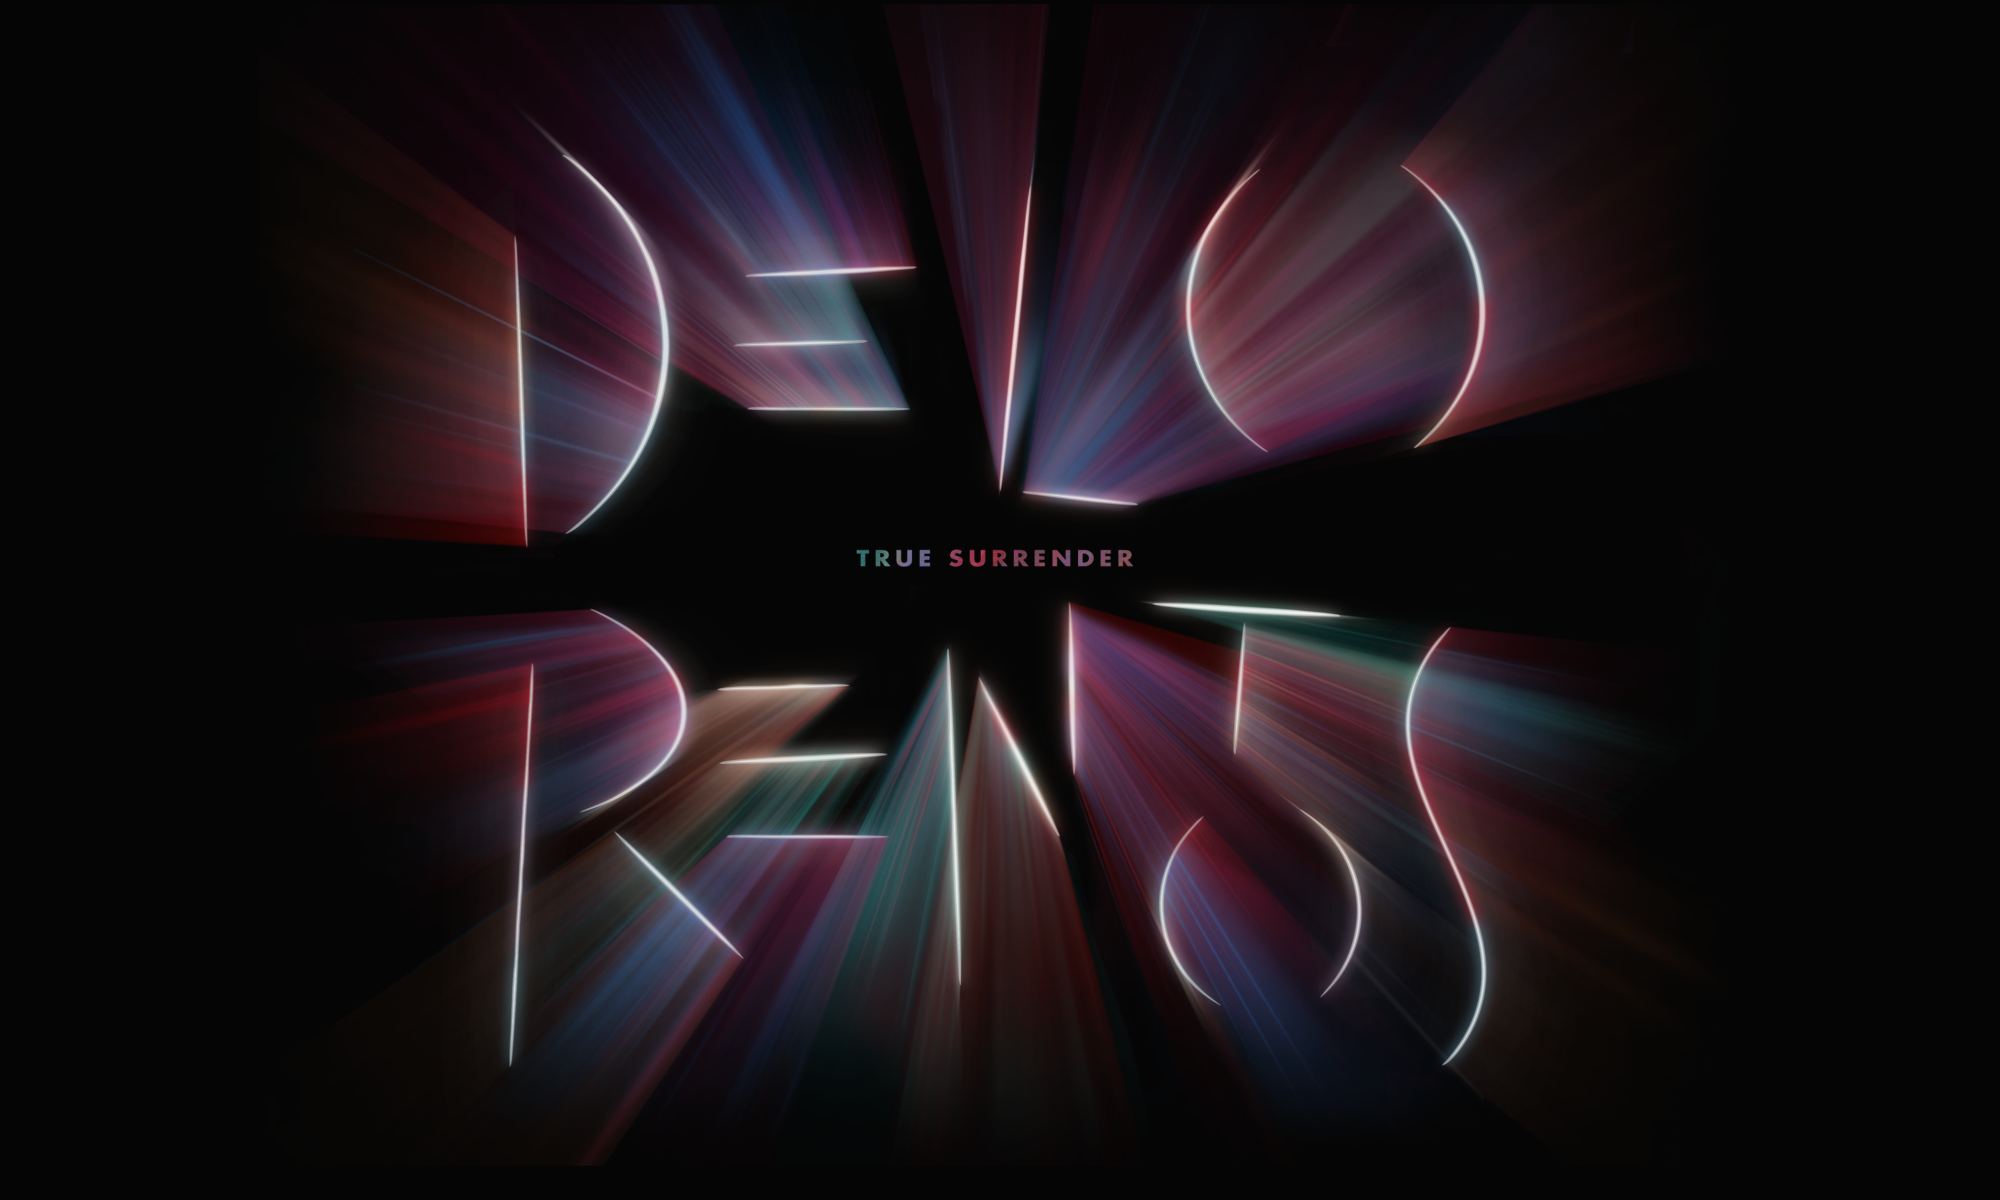 Delorentos new single True Surrender